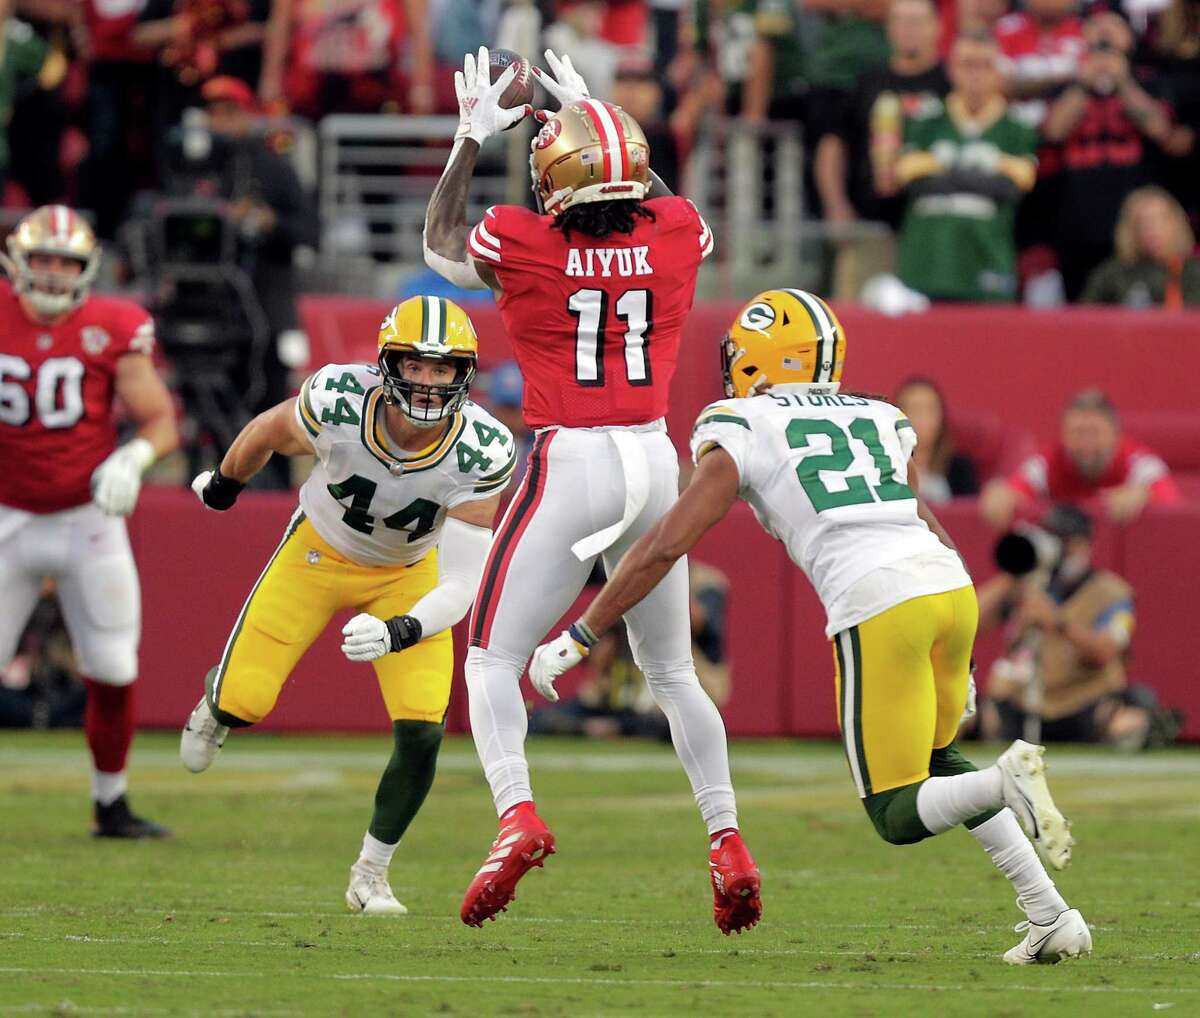 Brandon Ayuk (11) pulls in a short pass in the first half as the San Francisco 49ers played the Greenbay Packers at Levi's Stadium in Santa Clara, Calif., on Sunday, September 26, 2021.